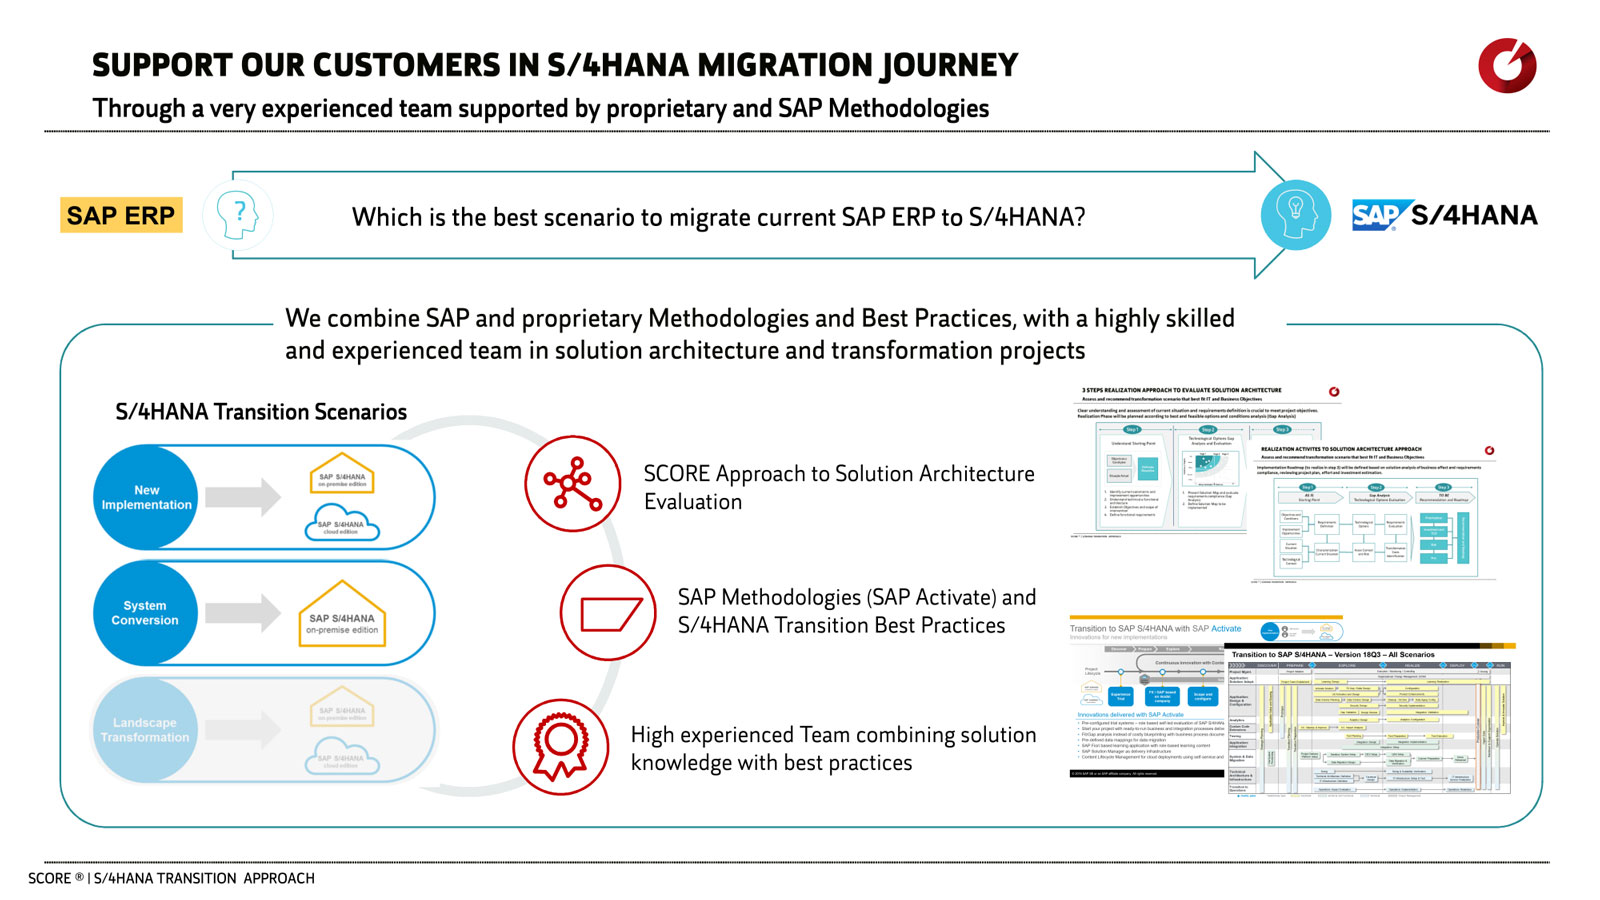 The best scenario to migrate current SAP ERP to S/4HANA